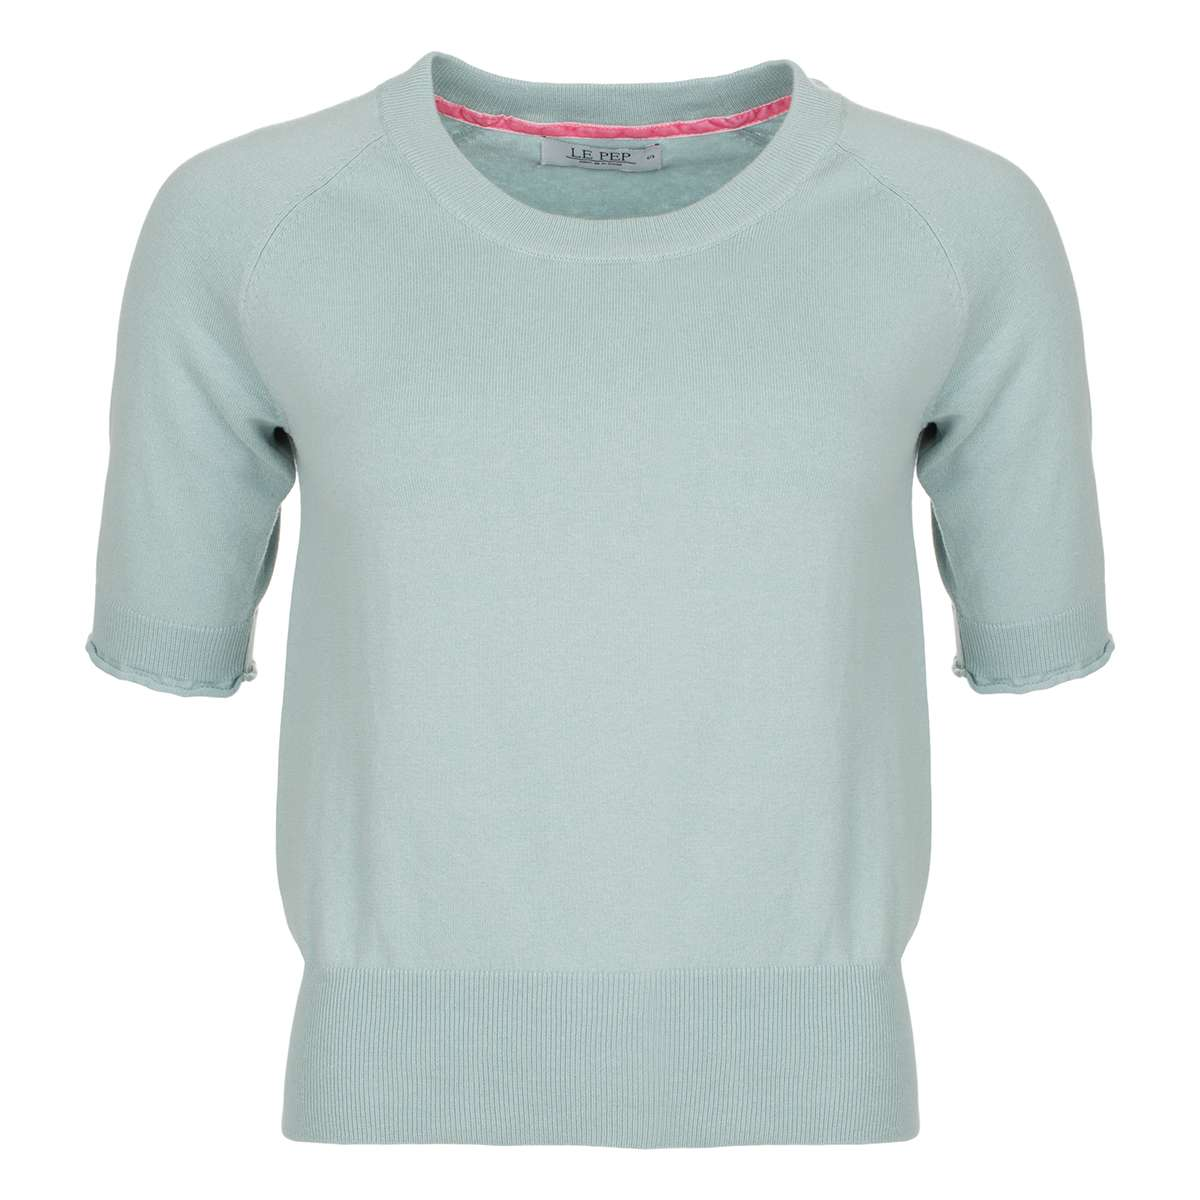 Top Anky Grey Mist Green